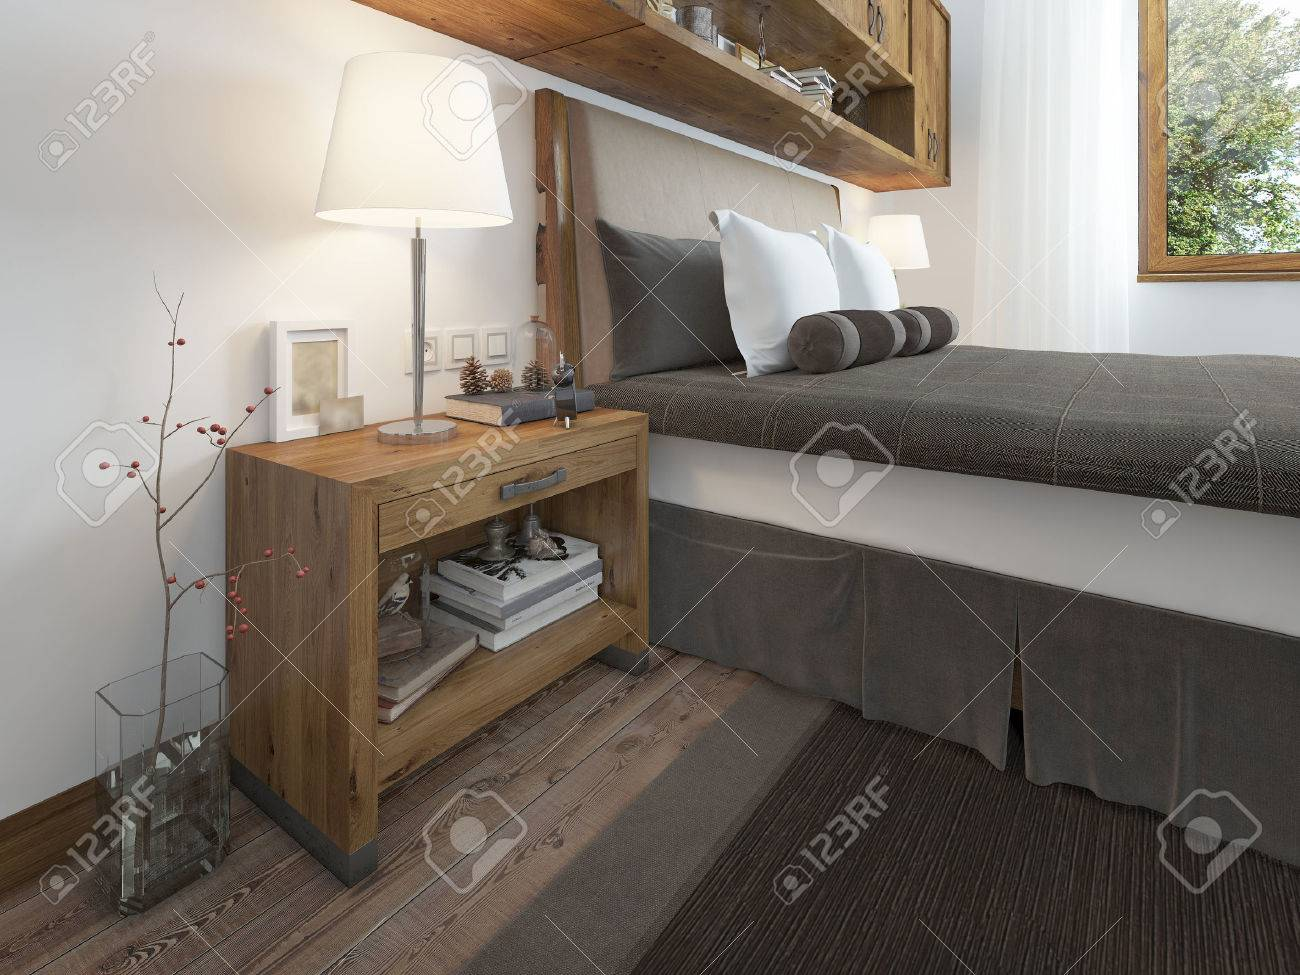 Wooden bedside table with a niche for the decor bedside table wooden bedside table with a niche for the decor bedside table with lamp and books aloadofball Choice Image